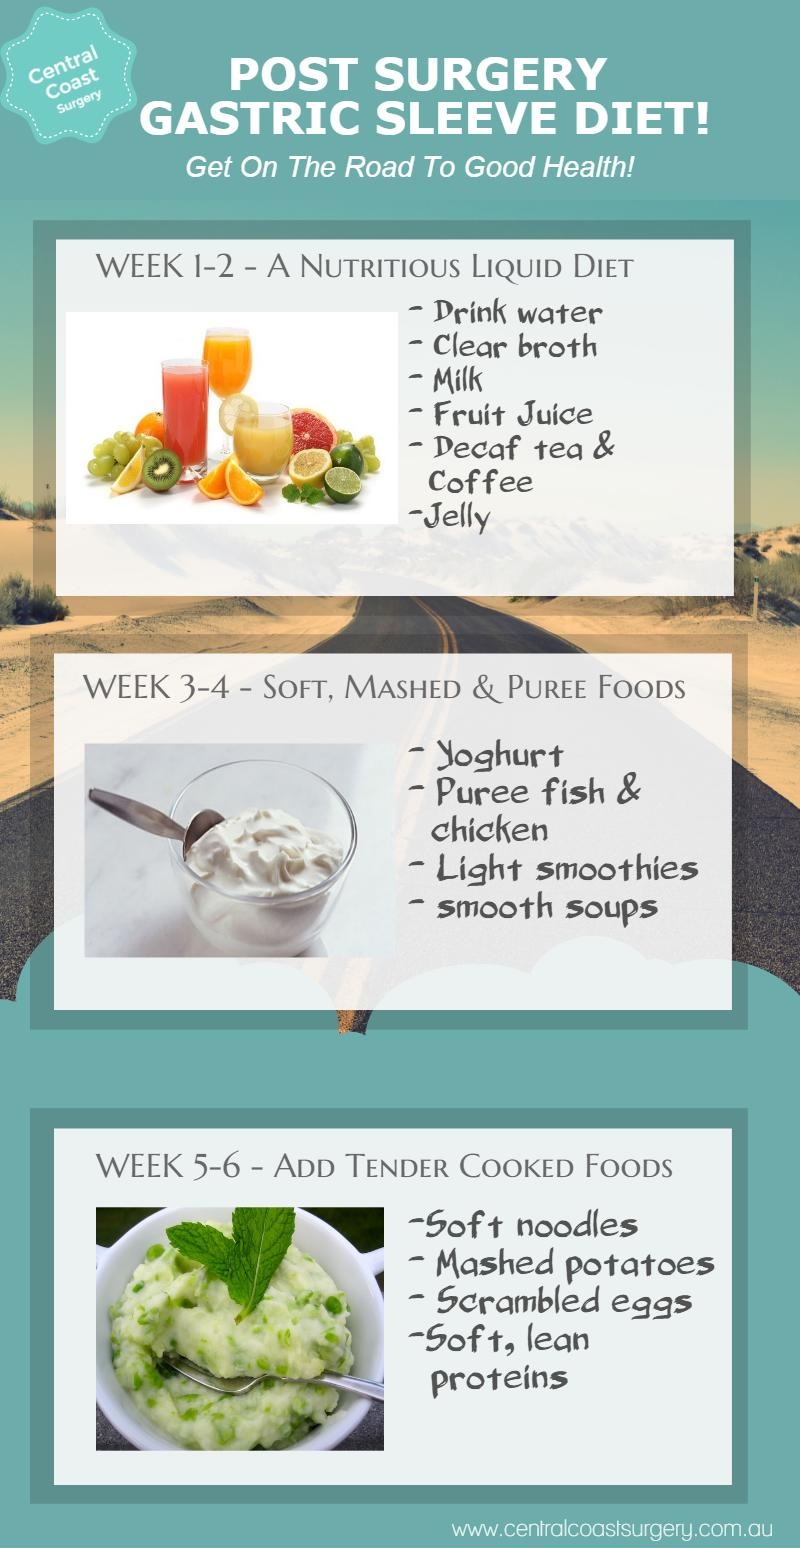 Post Surgery Gastric Sleeve Diet   Visual.ly